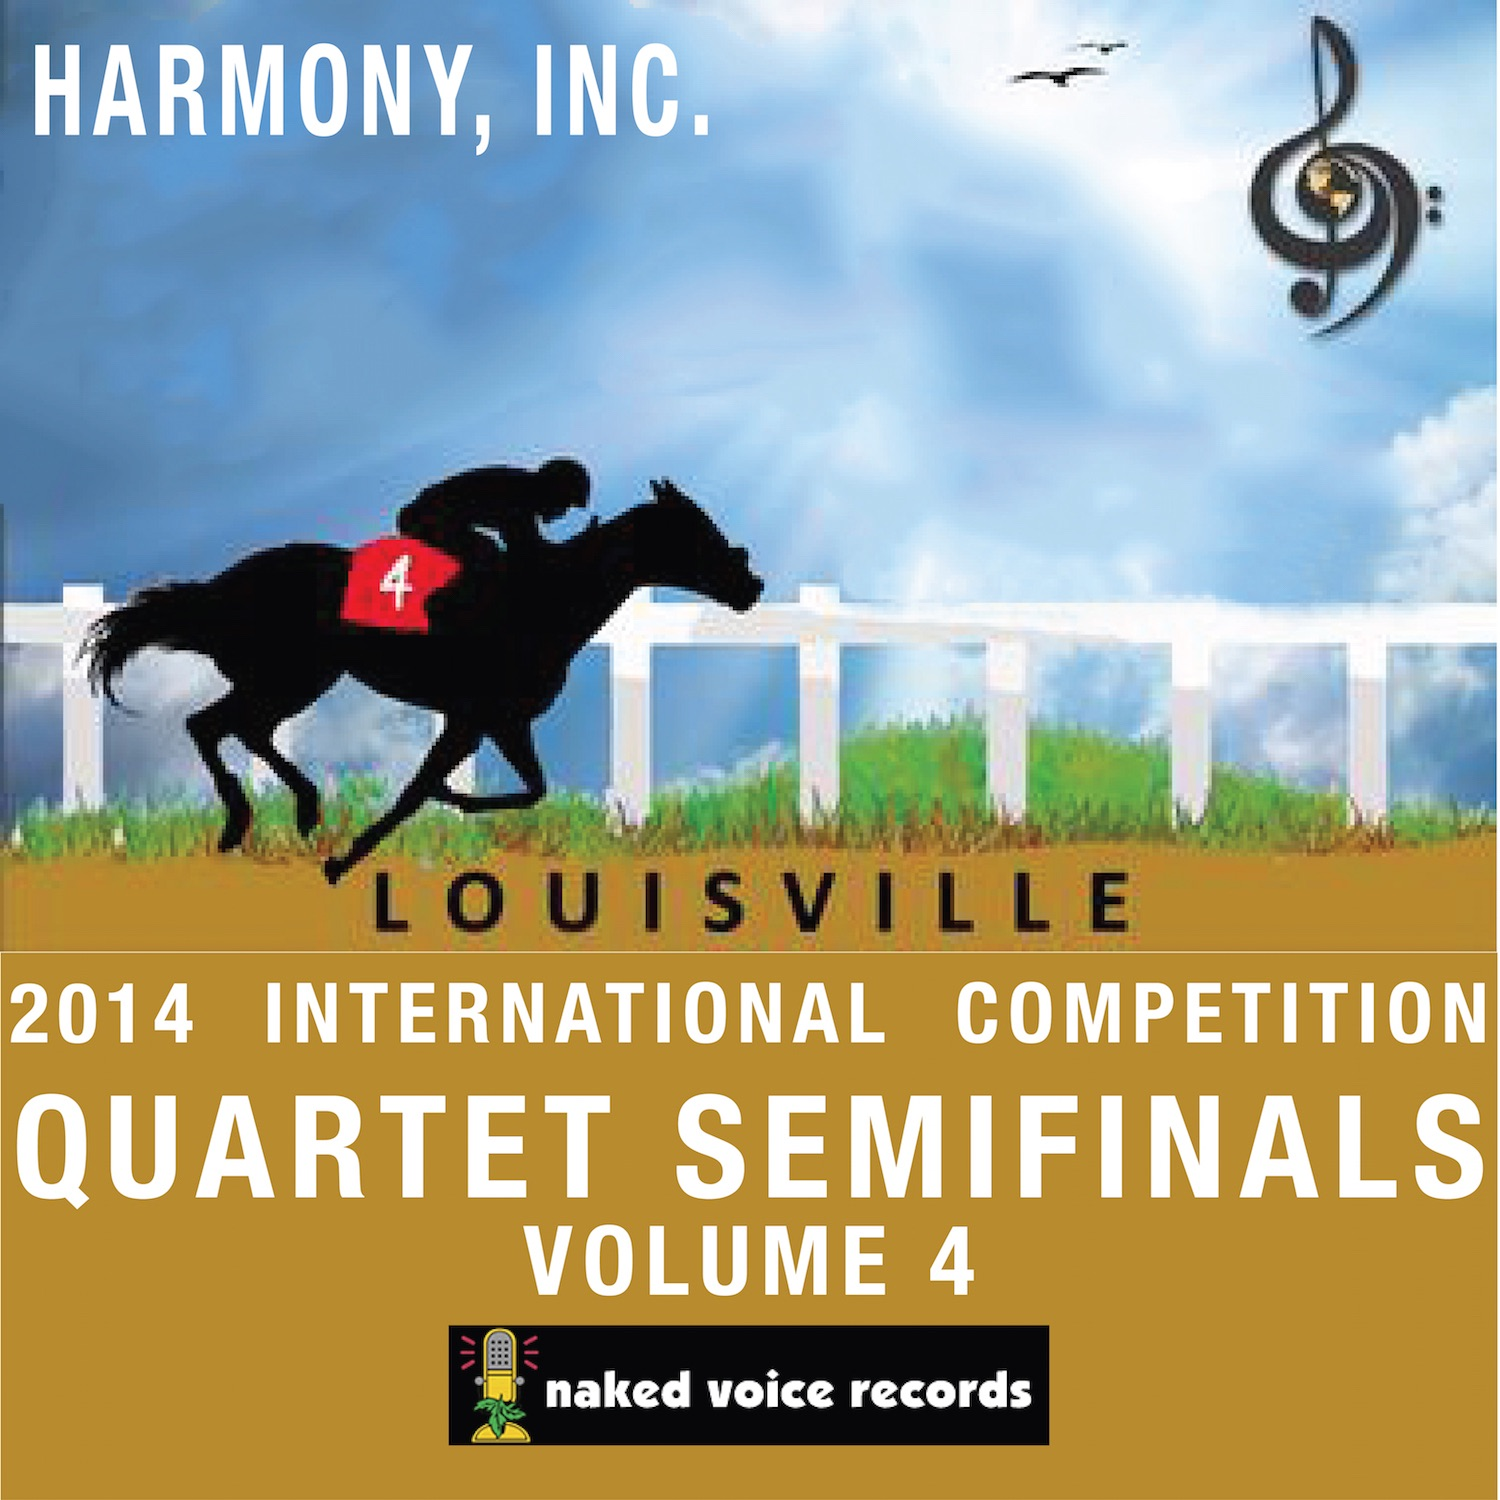 MP3 Songs Online:♫ Strangers - Incorporated album Harmony, Incorporated - 2014 International Convention & Contests - Quartet Semi-Finals Volume 4. Pop,Music listen to music online free without downloading.